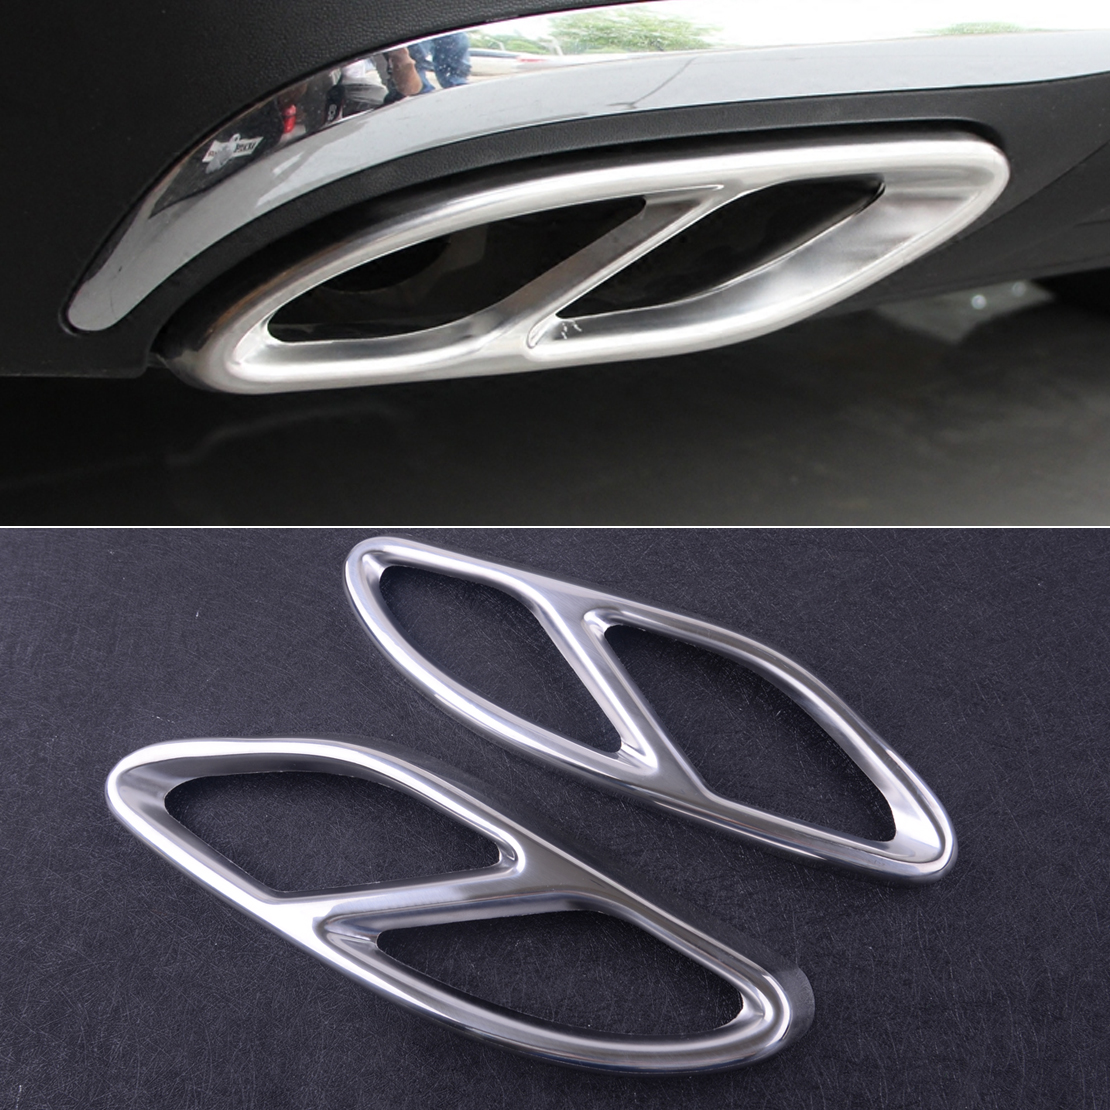 CITALL 2pcs 304 Stainless Steel Tail Exhaust Muffler Pipe Cover Trim For Mercedes Benz GLC A Class W176 W246 GLE 2015 2016 2017(China)